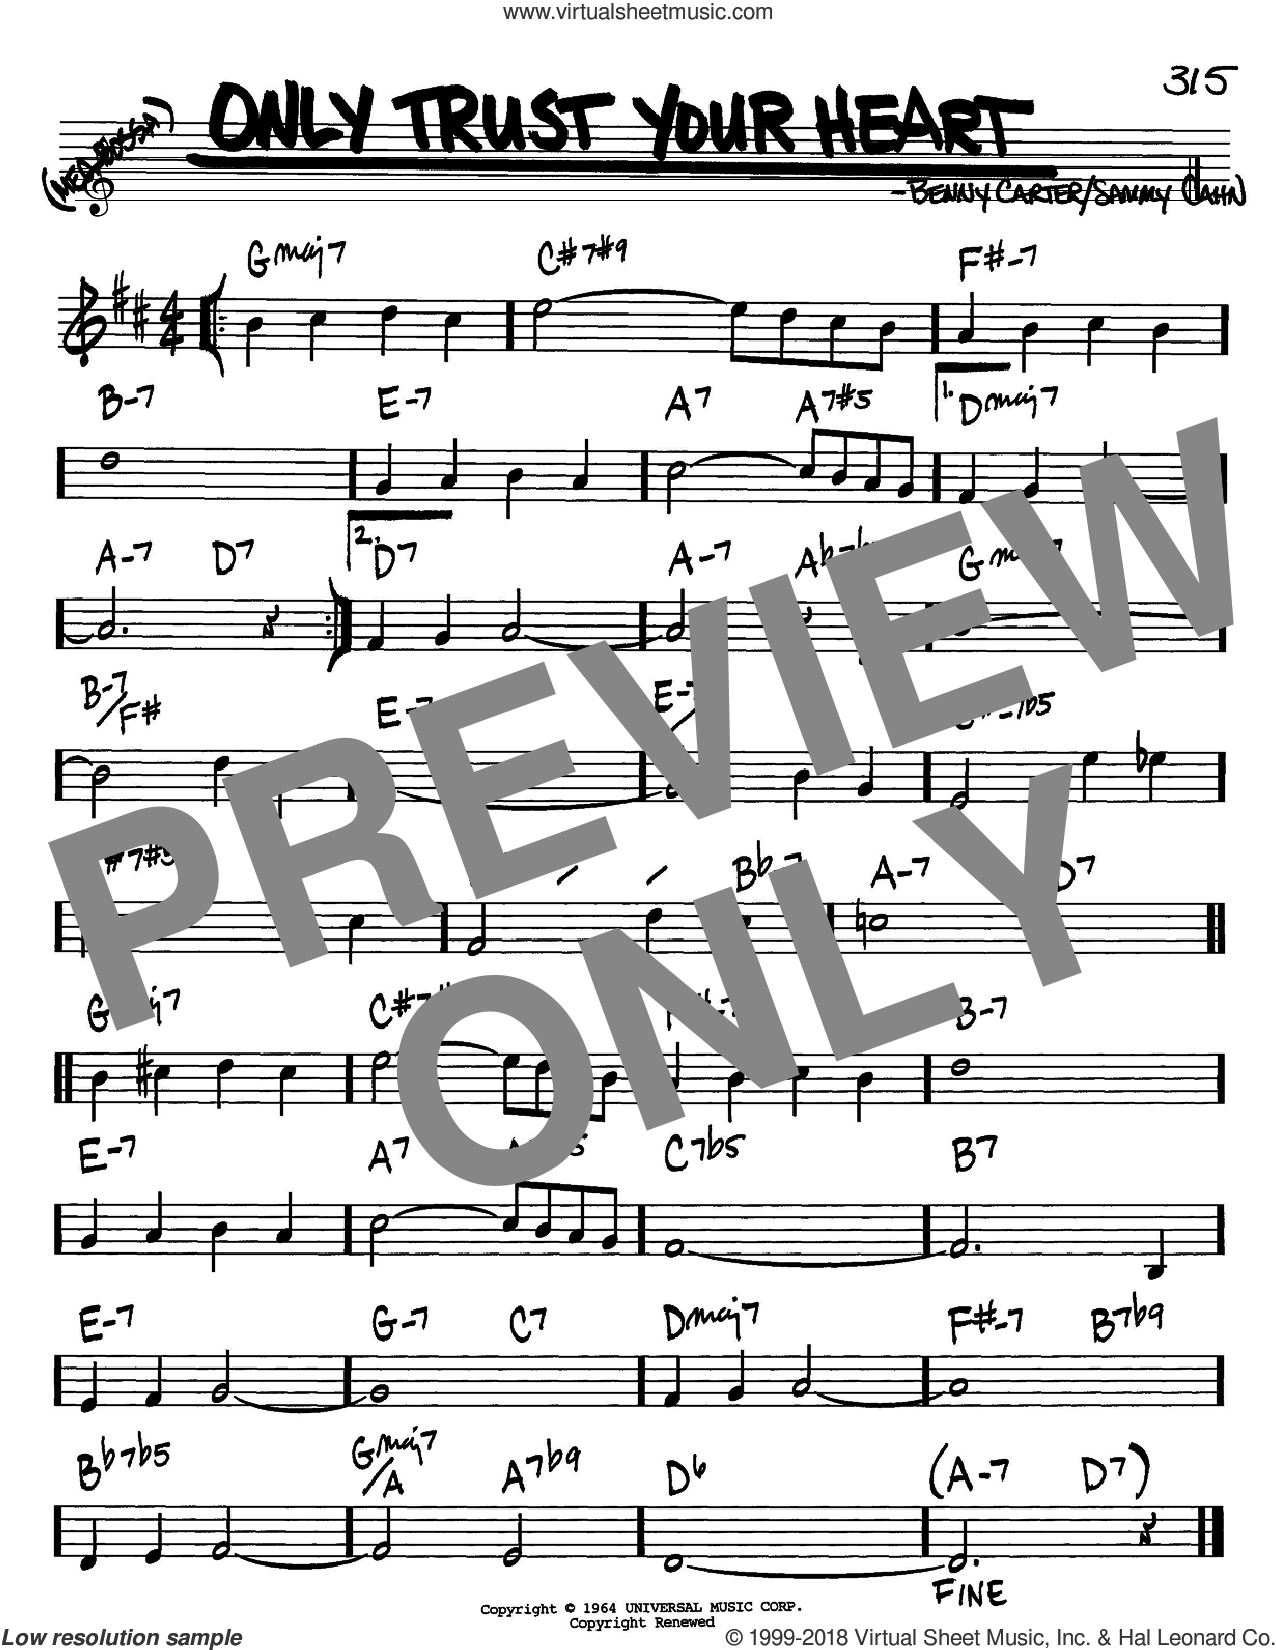 Only Trust Your Heart sheet music for voice and other instruments (Bb) by Benny Carter and Sammy Cahn. Score Image Preview.